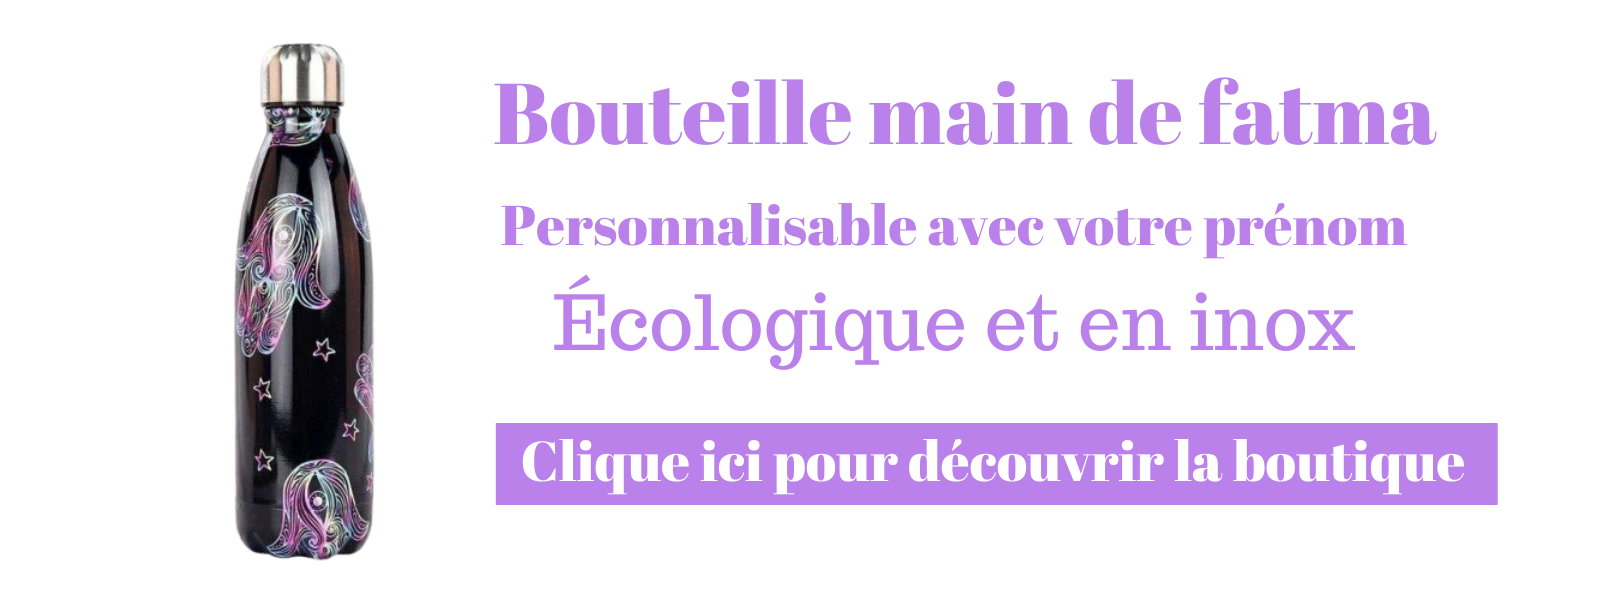 Bouteille inox personnalisable